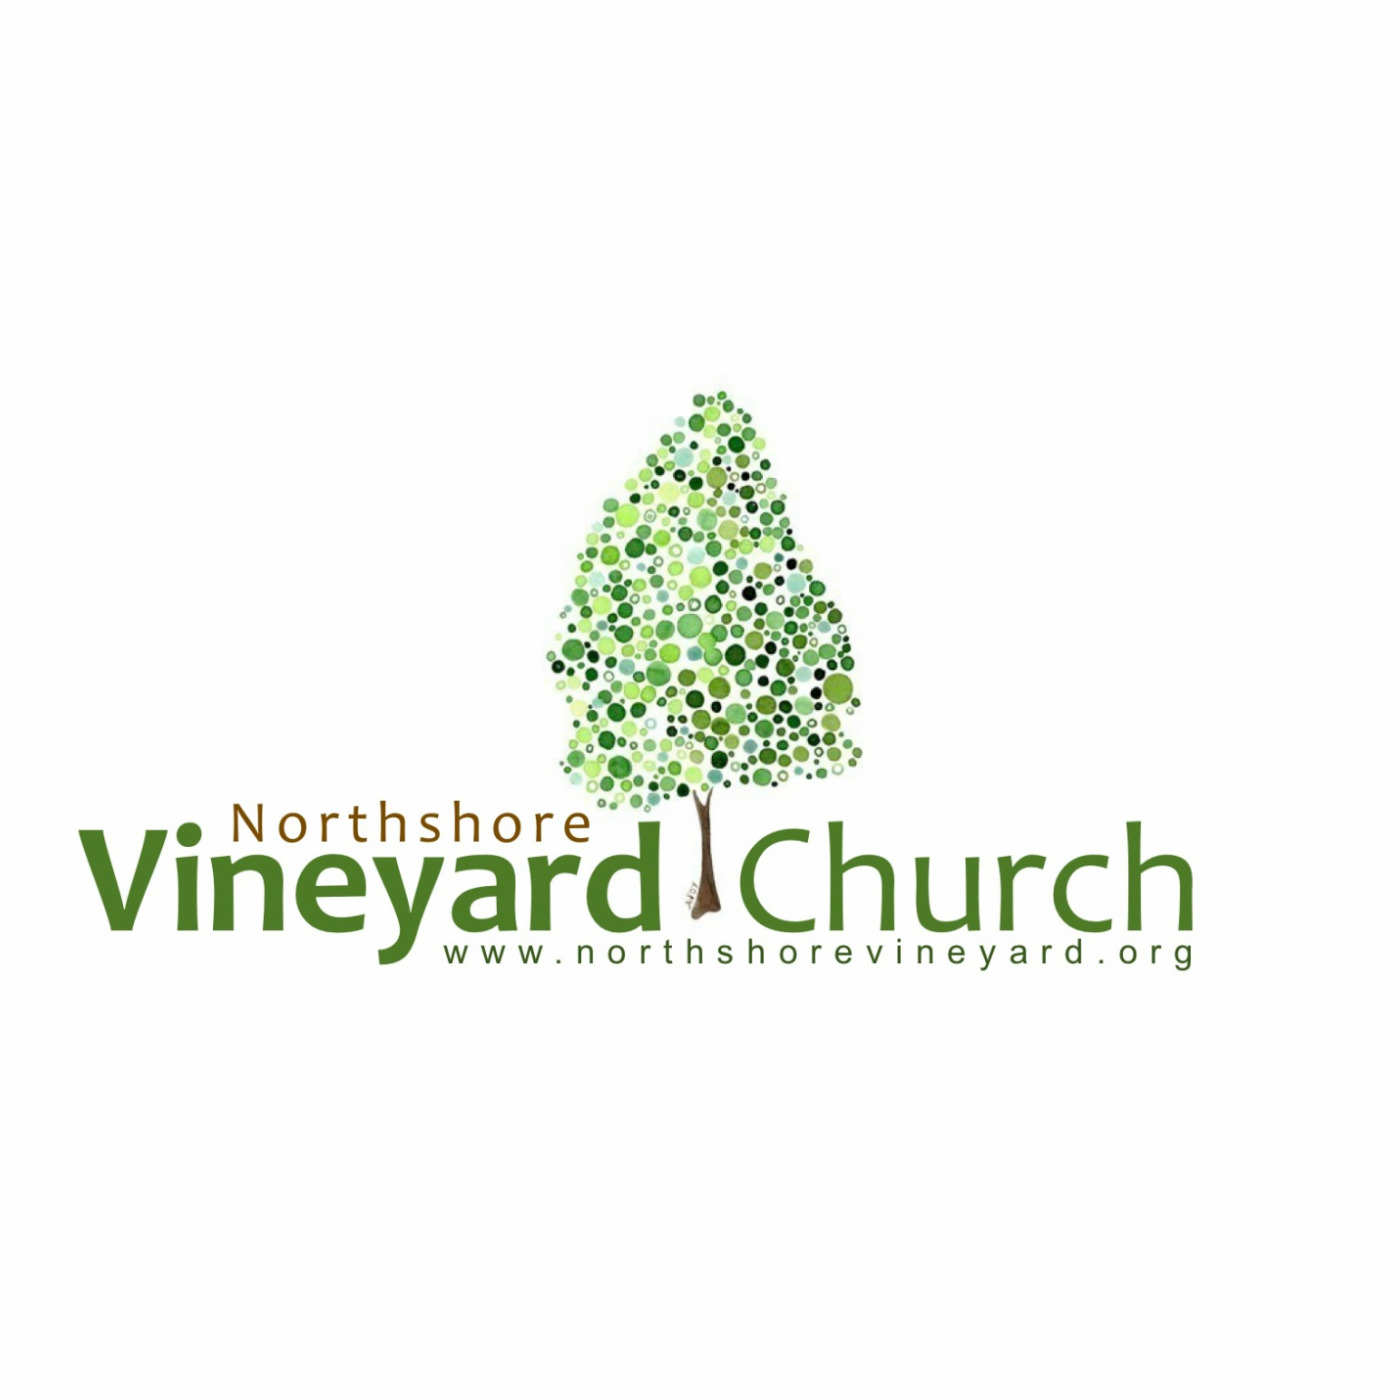 Northshore Vineyard Church